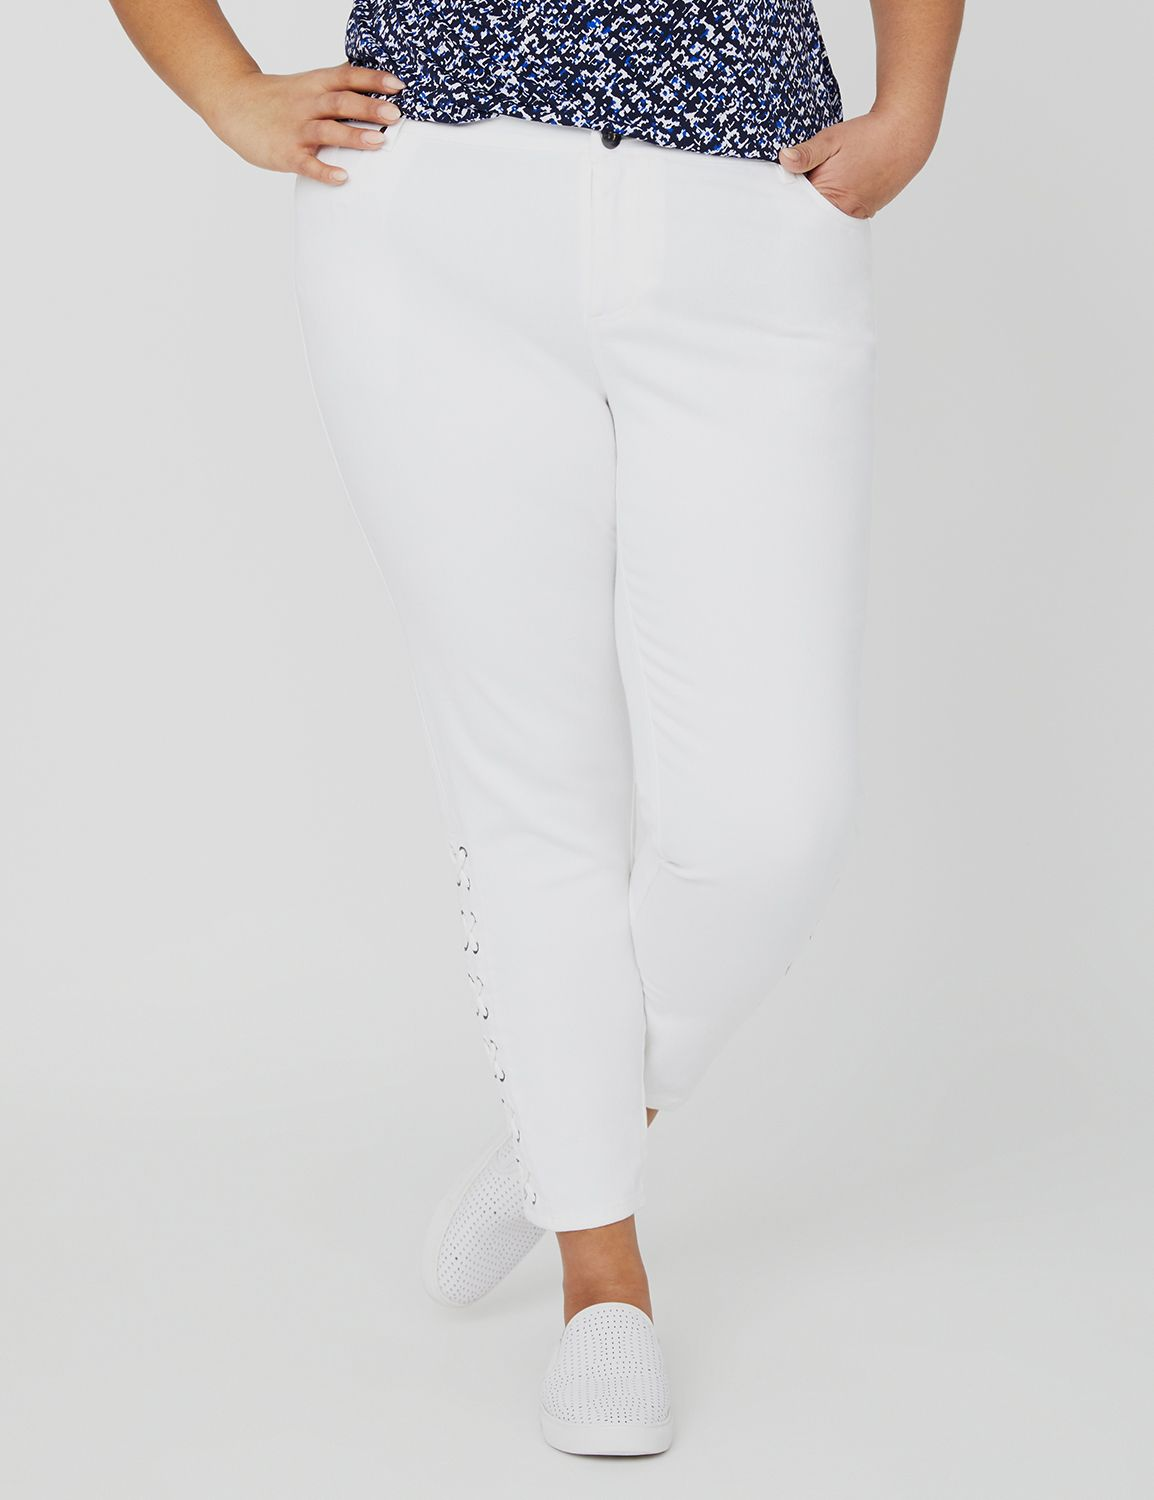 Curvy Collection Lace-Up White Jean 1091485 Curvy Collection Sateen Whi MP-300098719